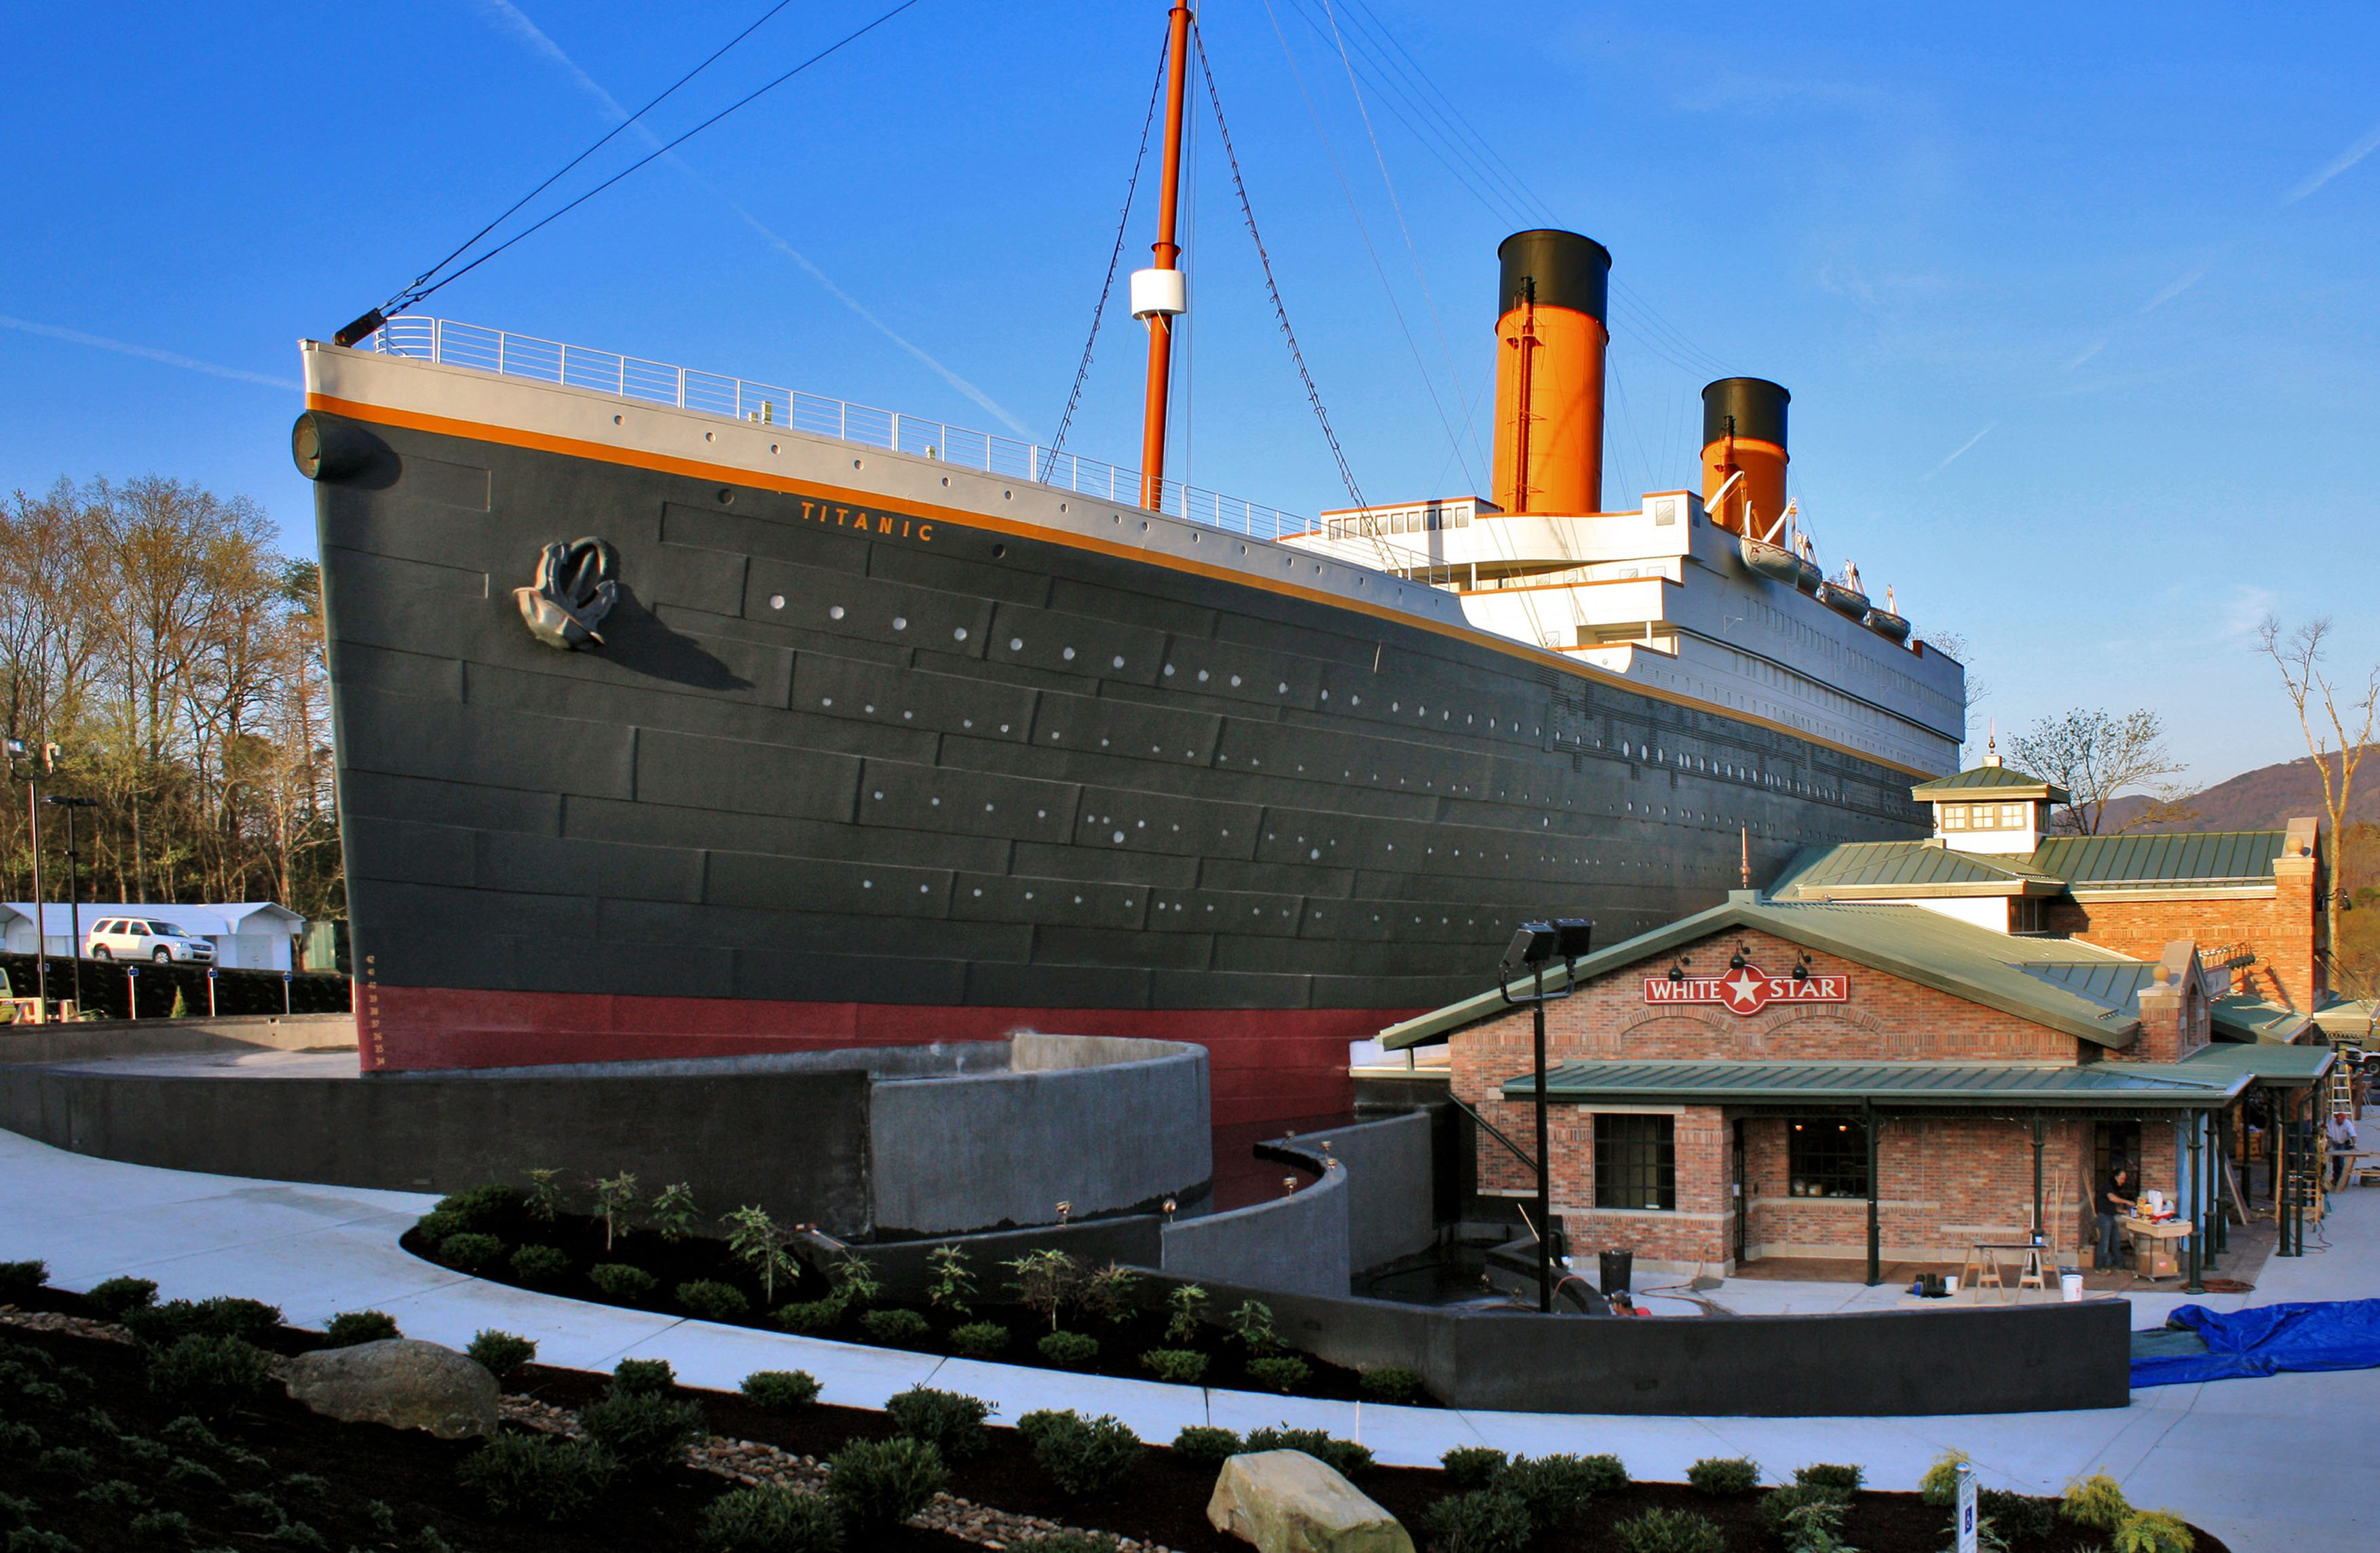 Titanic Museum Attraction, Pigeon Forge, Tennessee